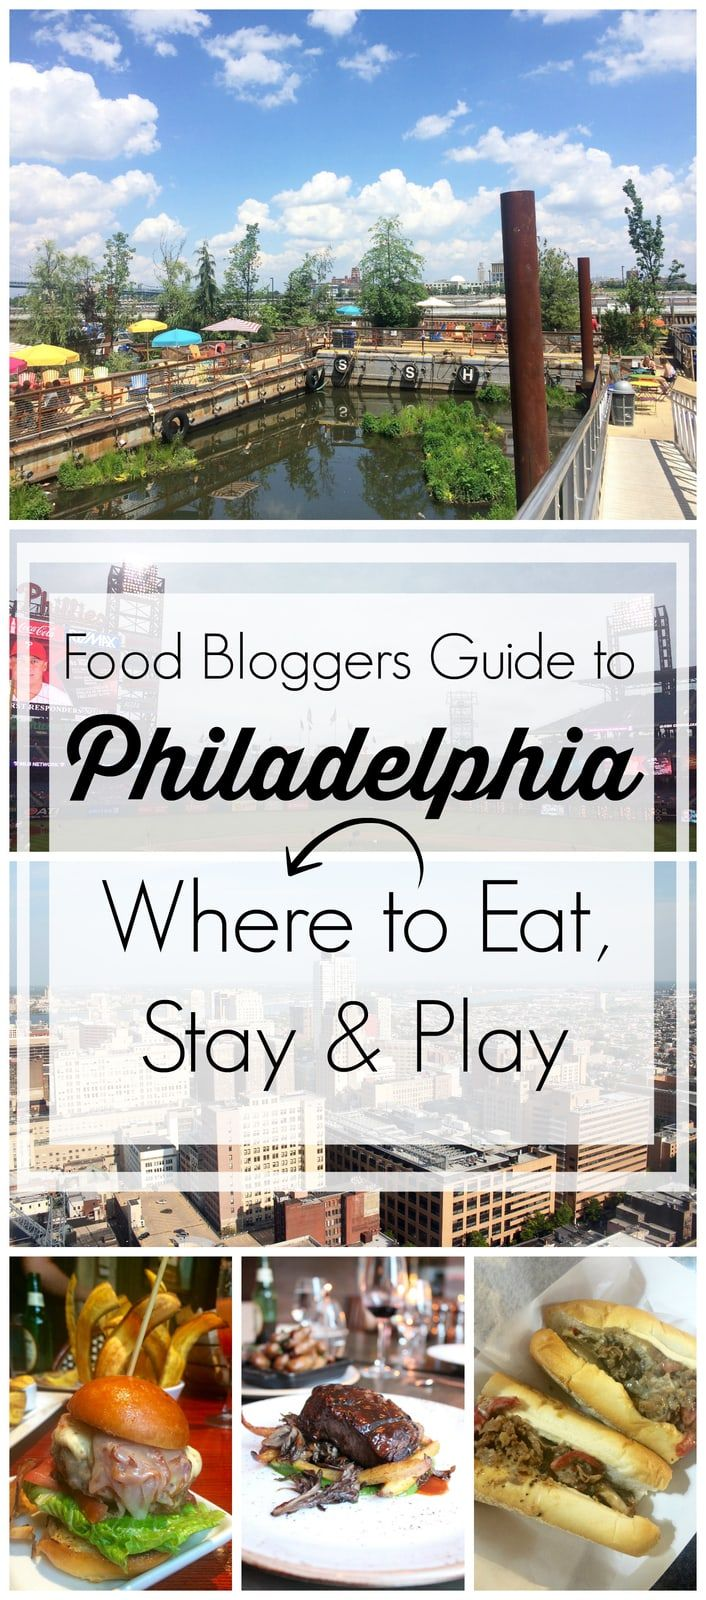 Food Bloggers Guide to Philadelphia Where to Eat, Stay